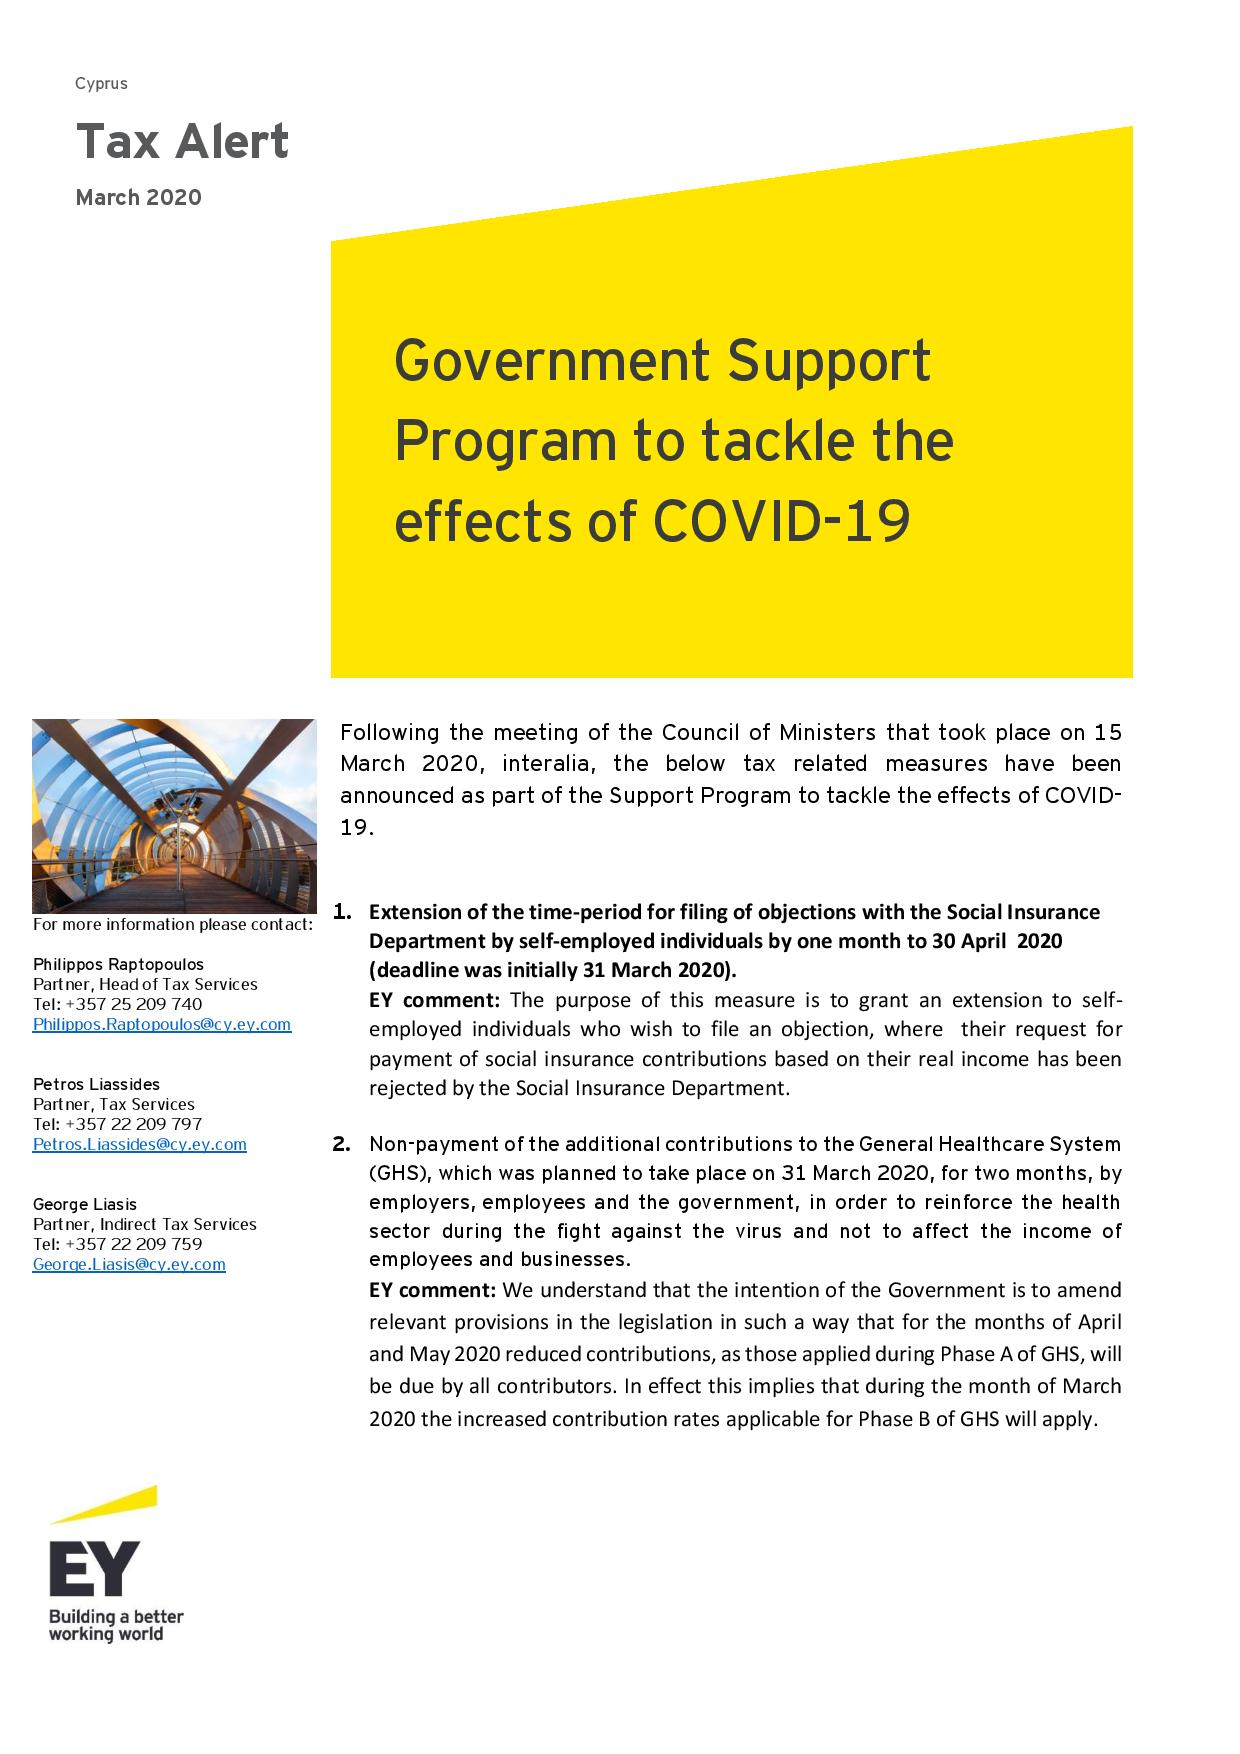 EY Cyprus: Government Support Program to tackle the effects of COVID-19